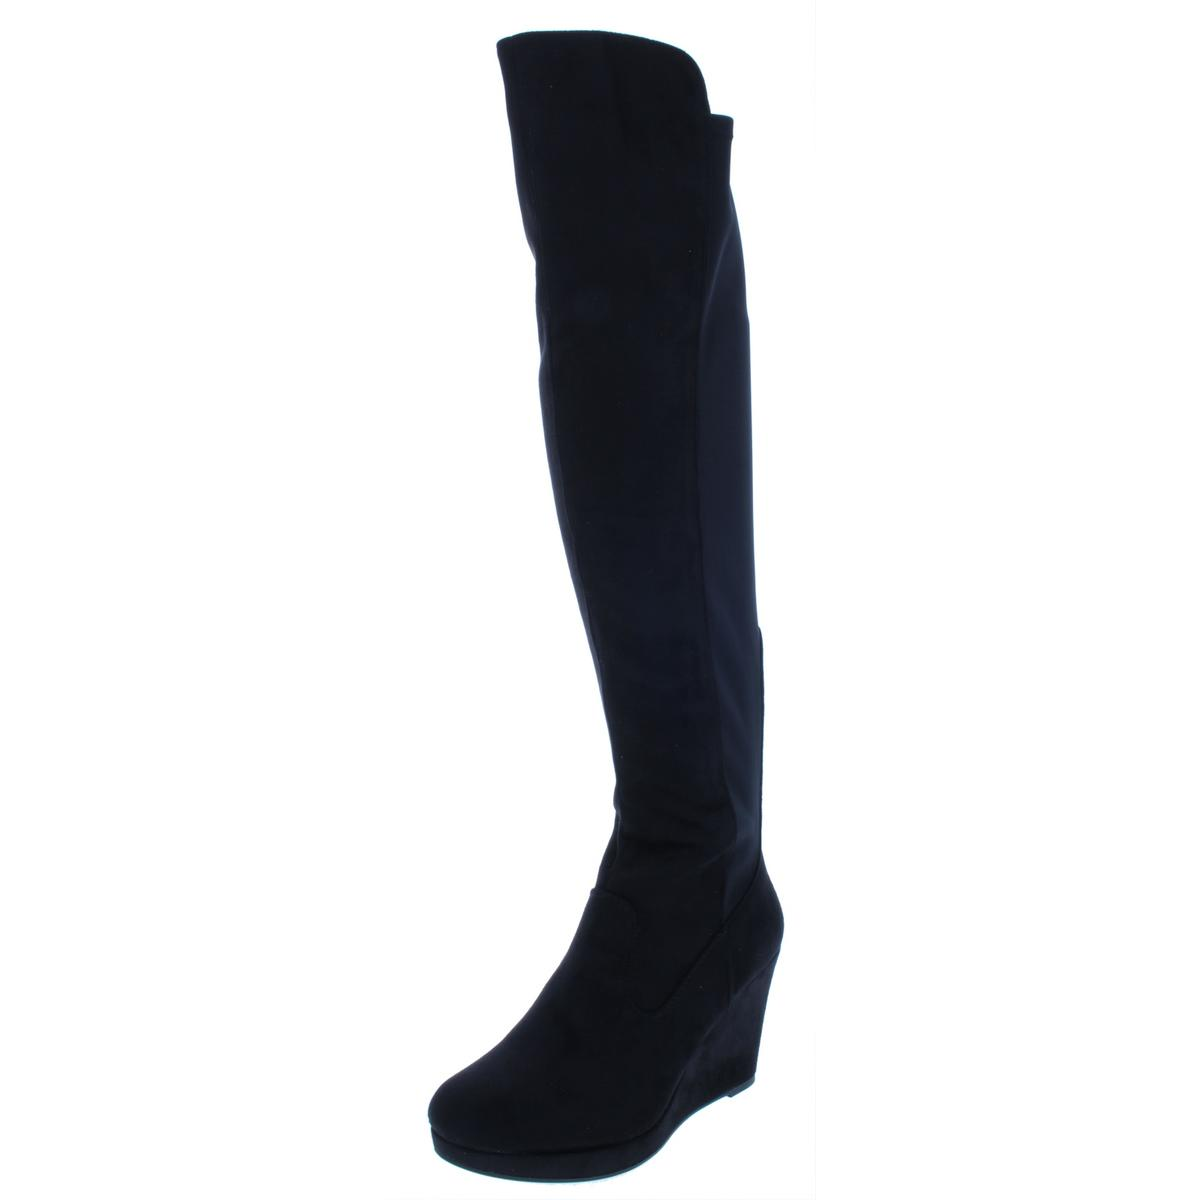 Chinese Laundry Donna Donna Donna Lovey Faux Suede Wedges Knee-High Stivali Shoes BHFO 5496 023962